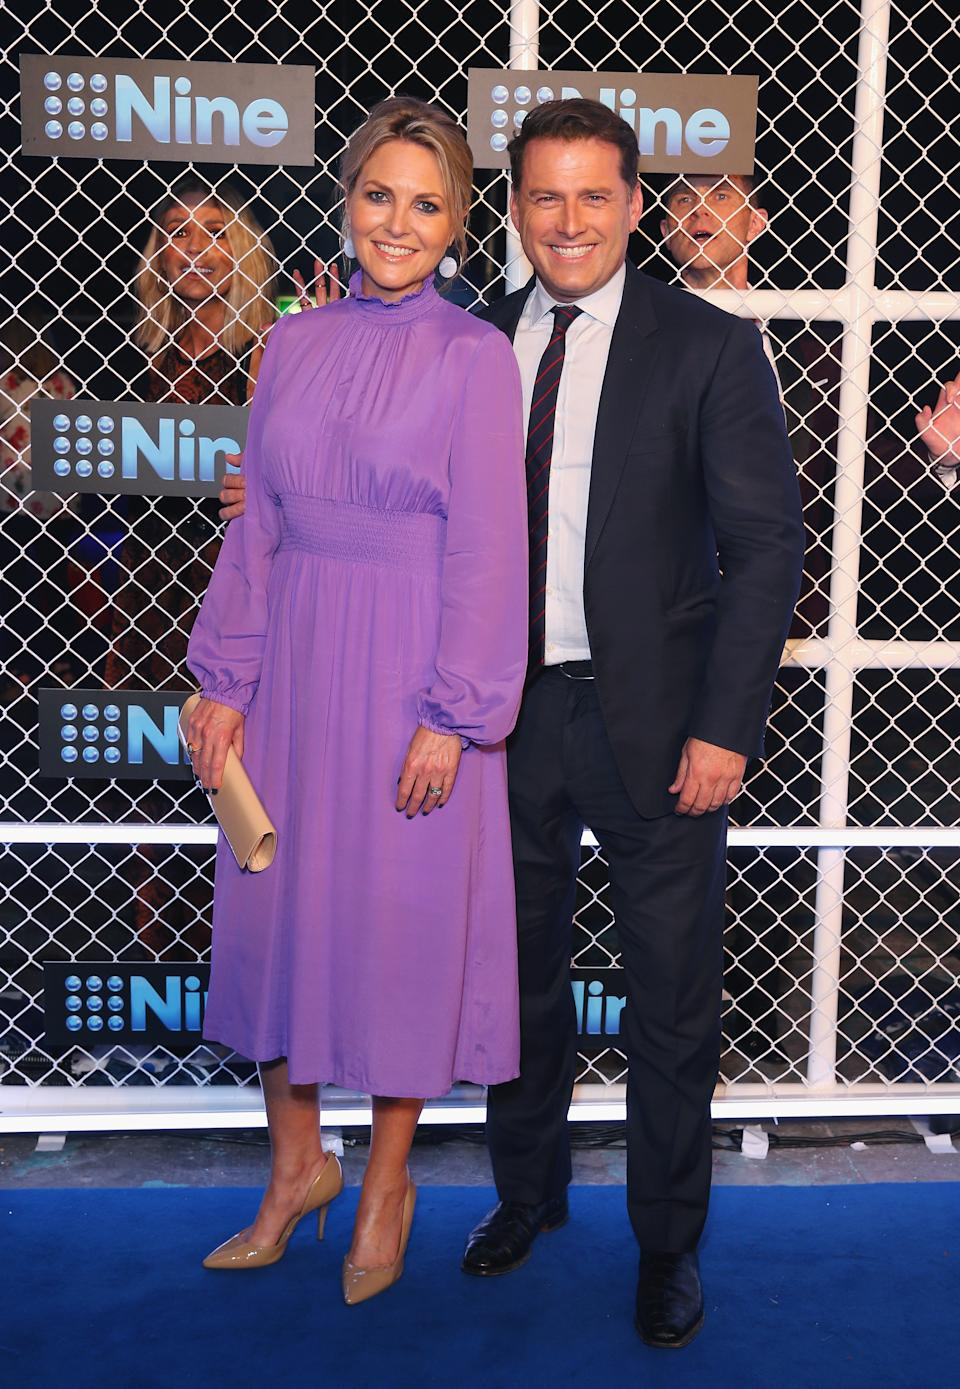 Karl was previously hosting the Today show on Channel Nine with Georgie Gardner when she took over from Lisa Wilkinson.